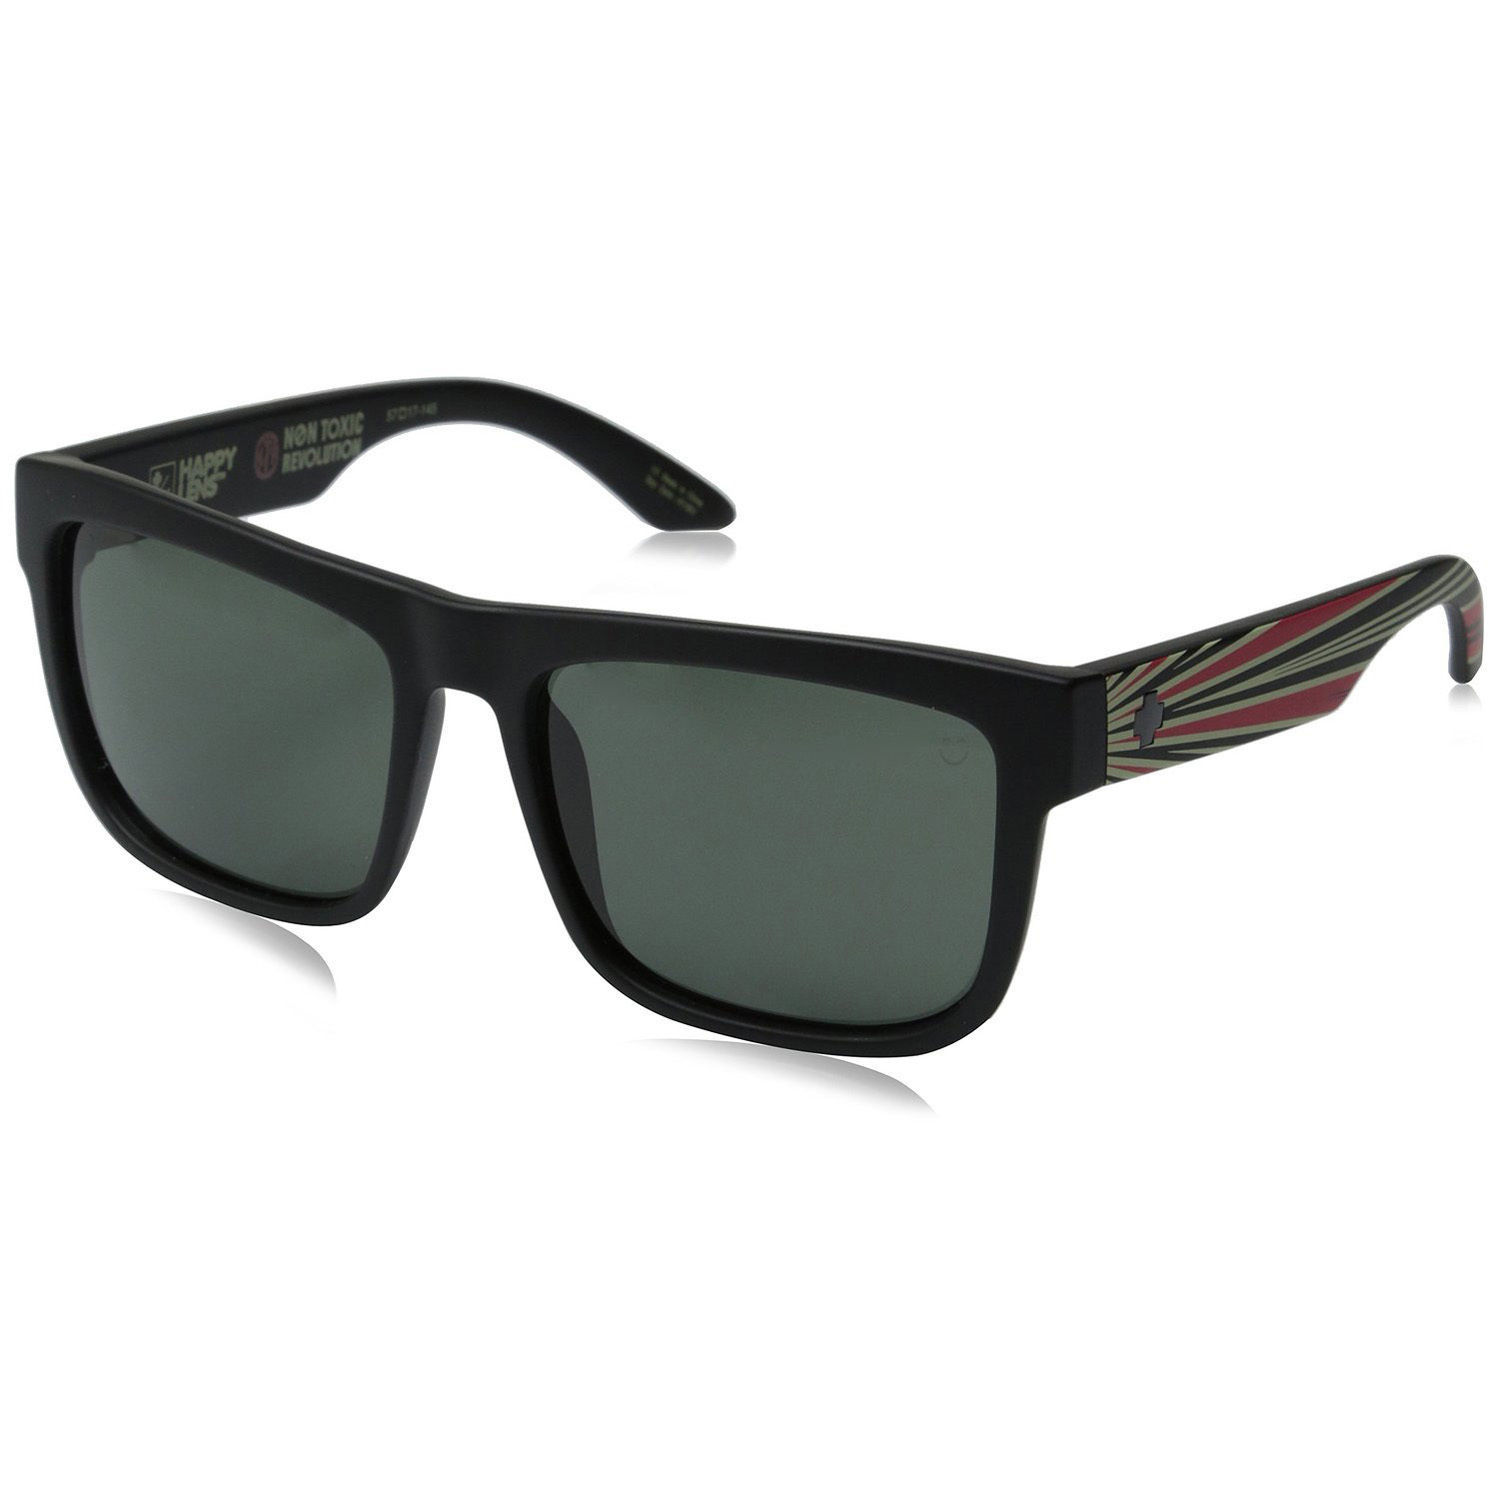 3120e65306 S l1600. S l1600. Previous. Spy Optic Discord Non-Toxic Matte Black Frame  Happy Grey Green Lens Sunglasses